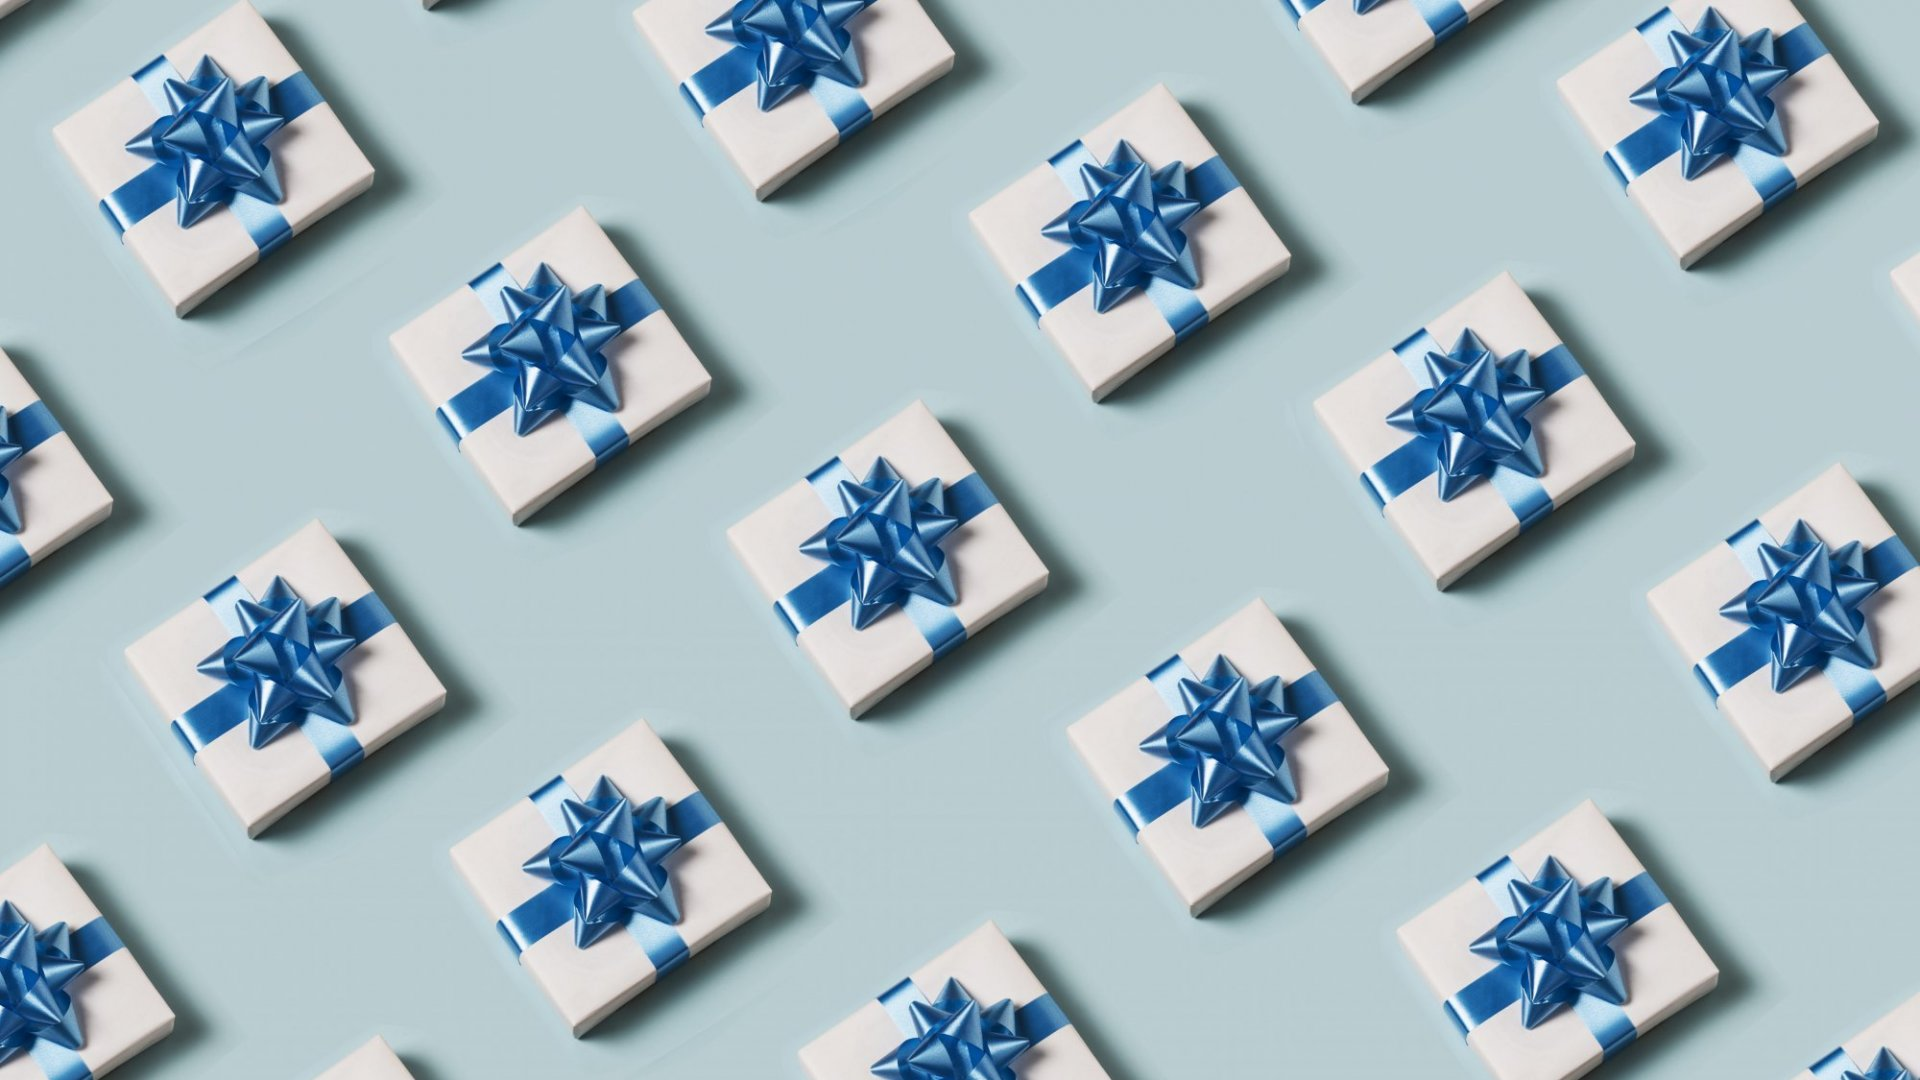 4 Ways Retailers Can Win Over Customers This Holiday Season